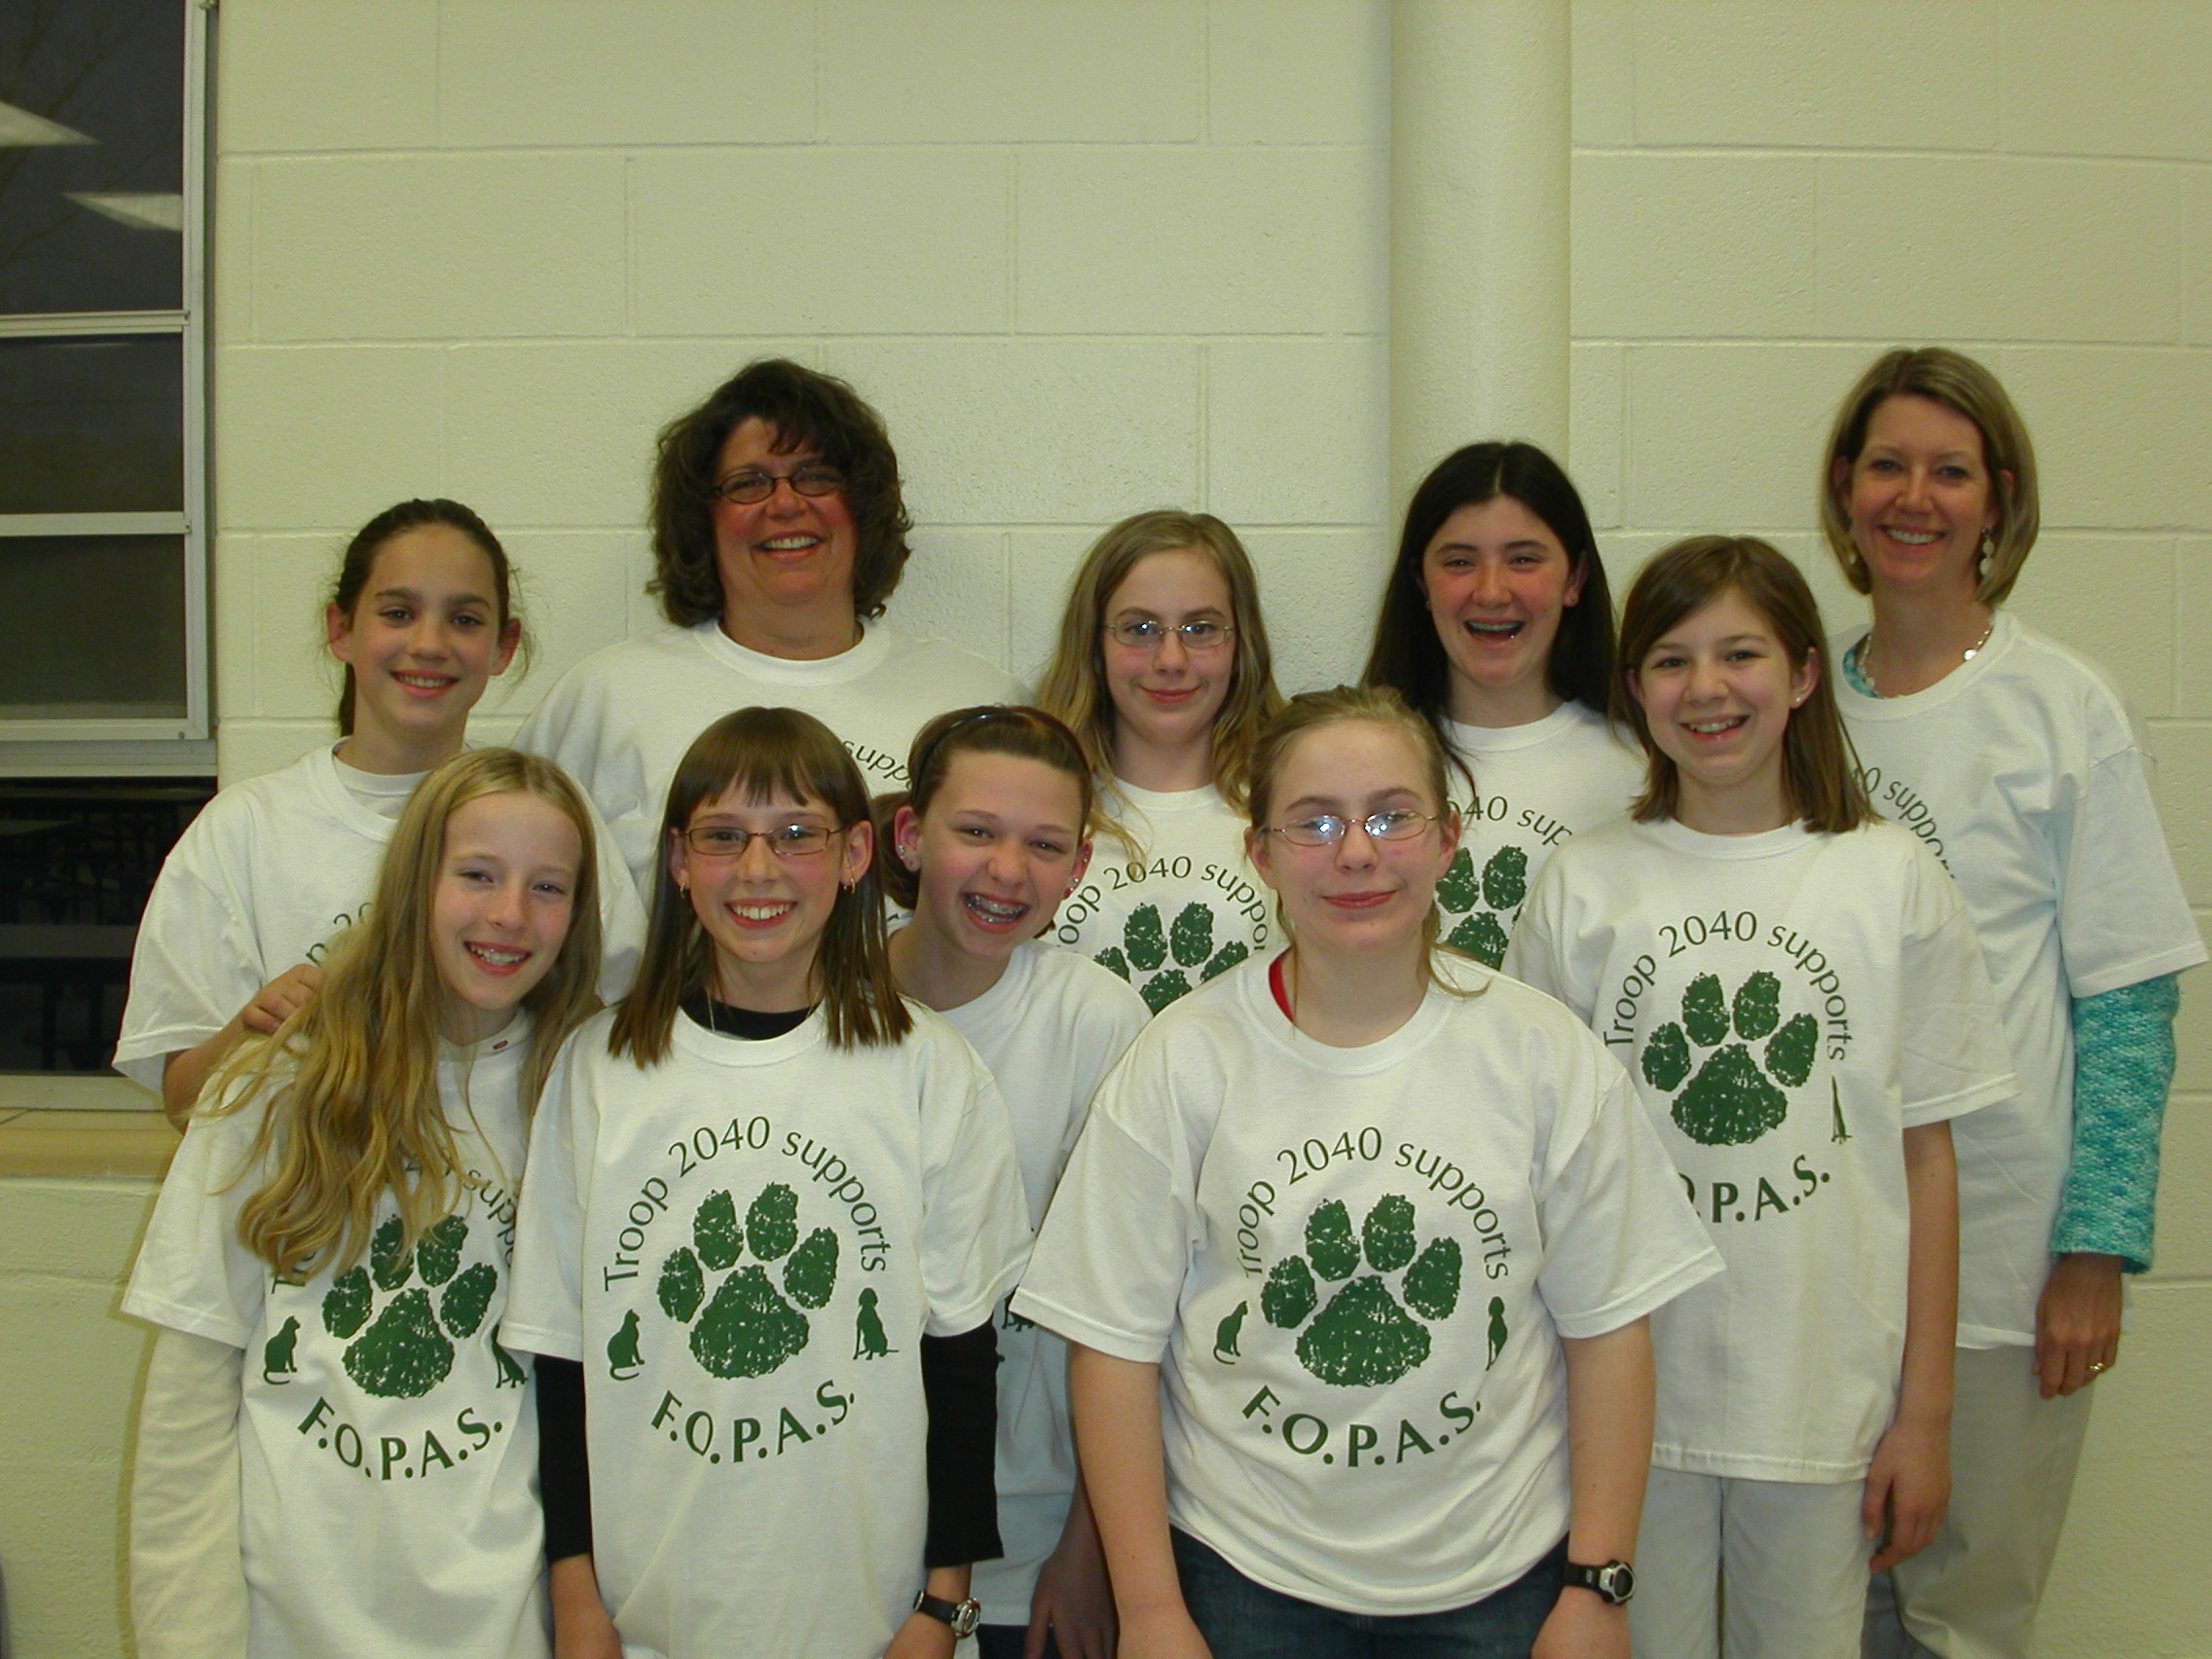 Shirt design ideas for girl